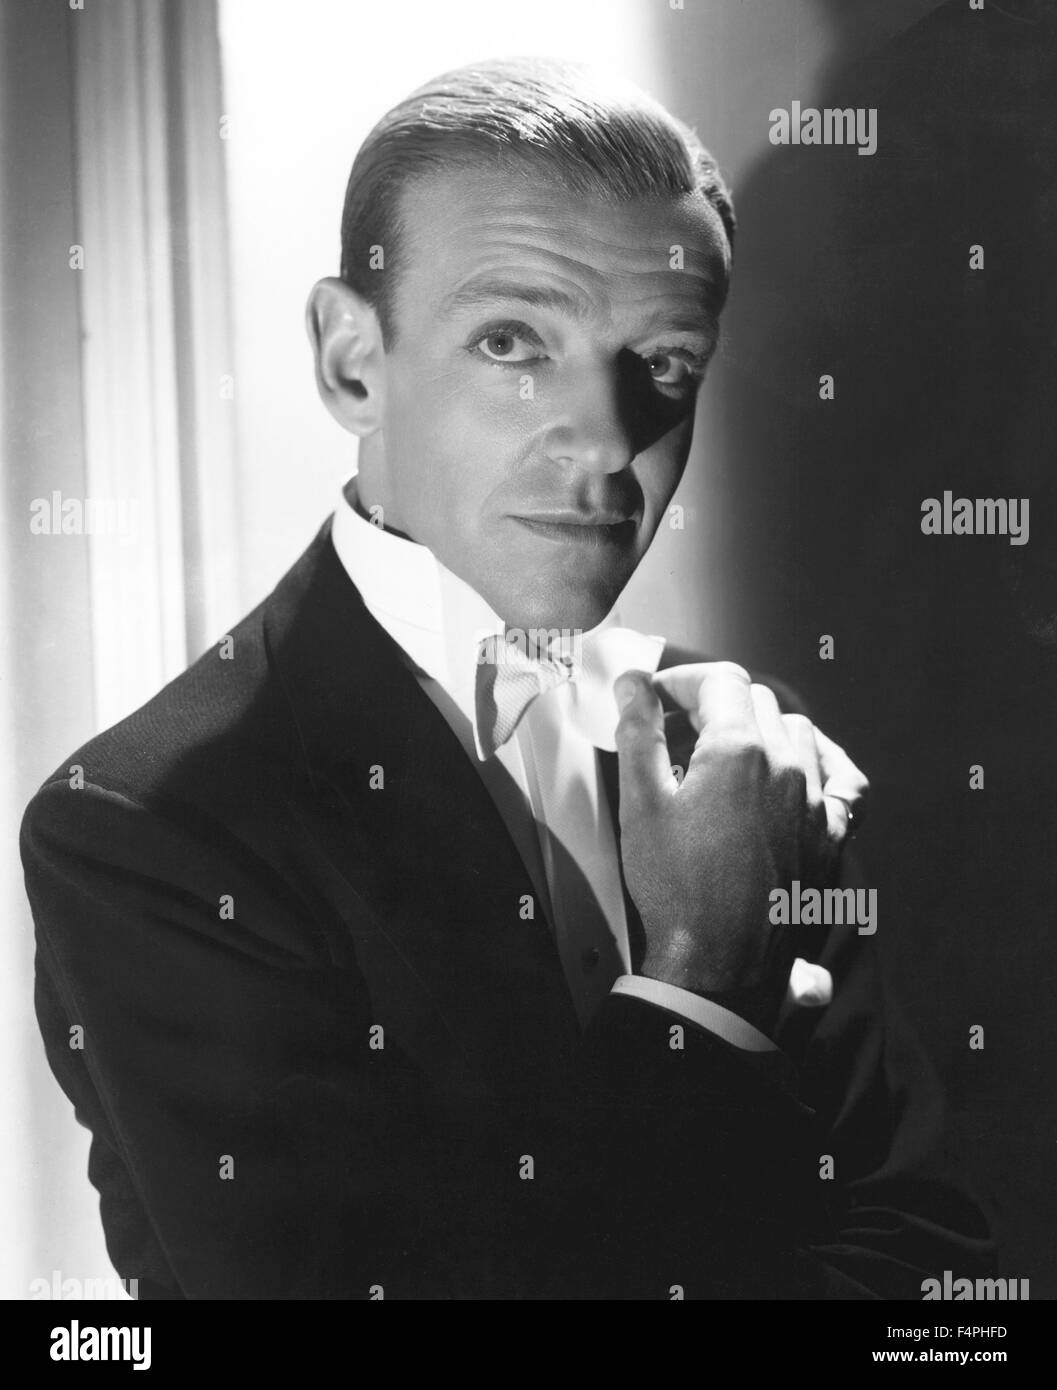 Fred Astaire in the 50's - Stock Image